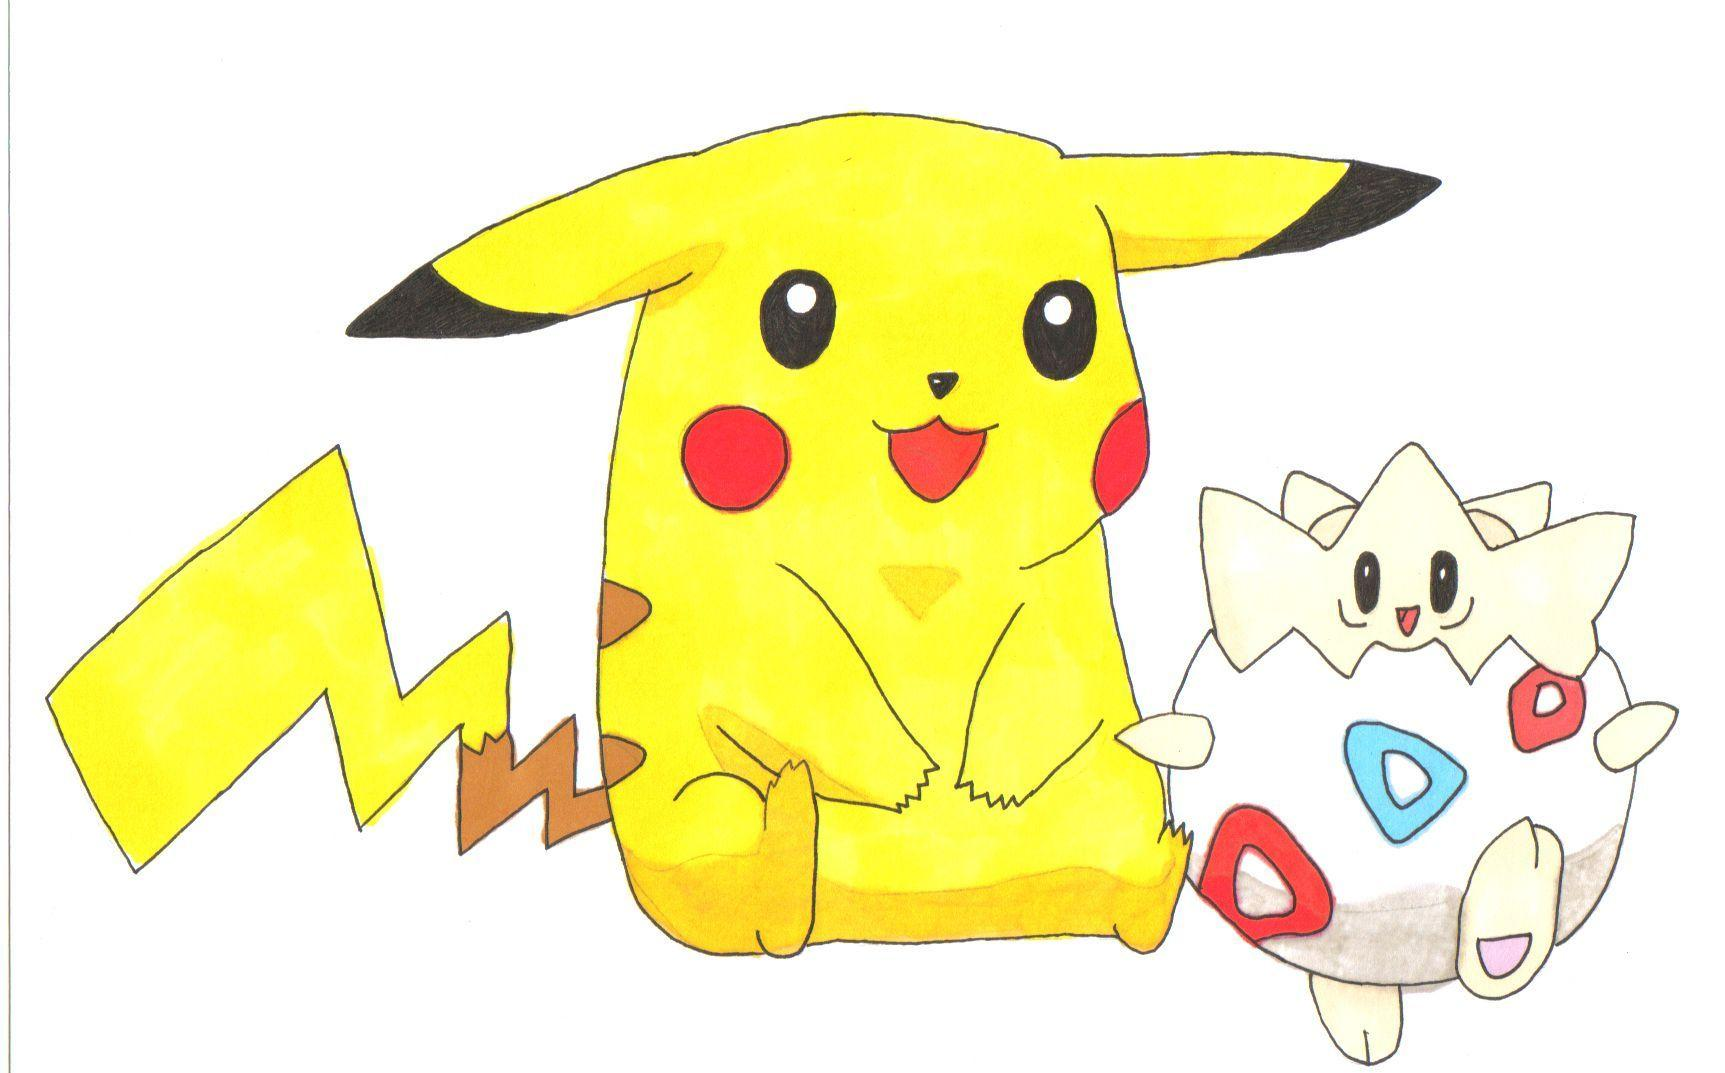 pikachu babysitting togepi | Pikachu | Pinterest | Babysitting and ...